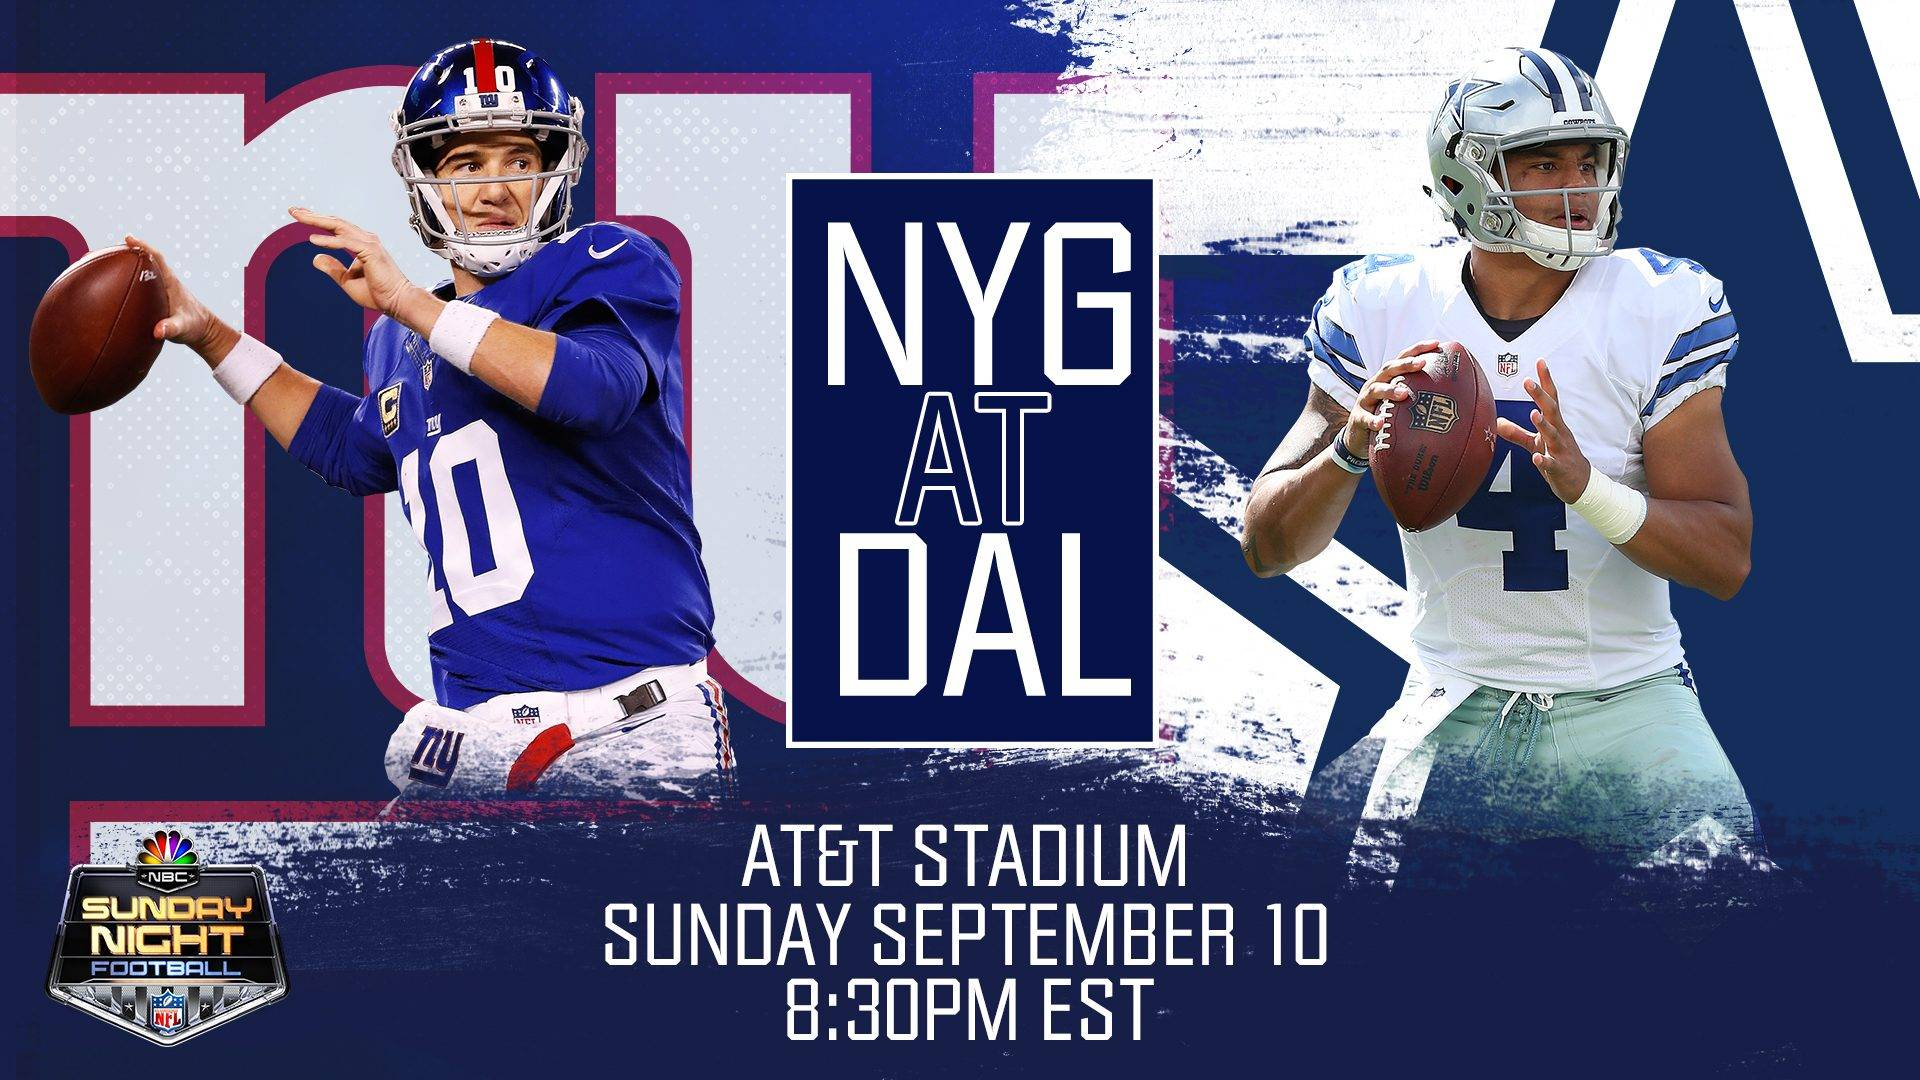 Sunday Night Football in NFL propune meciul dintre Cowboys si Giants!